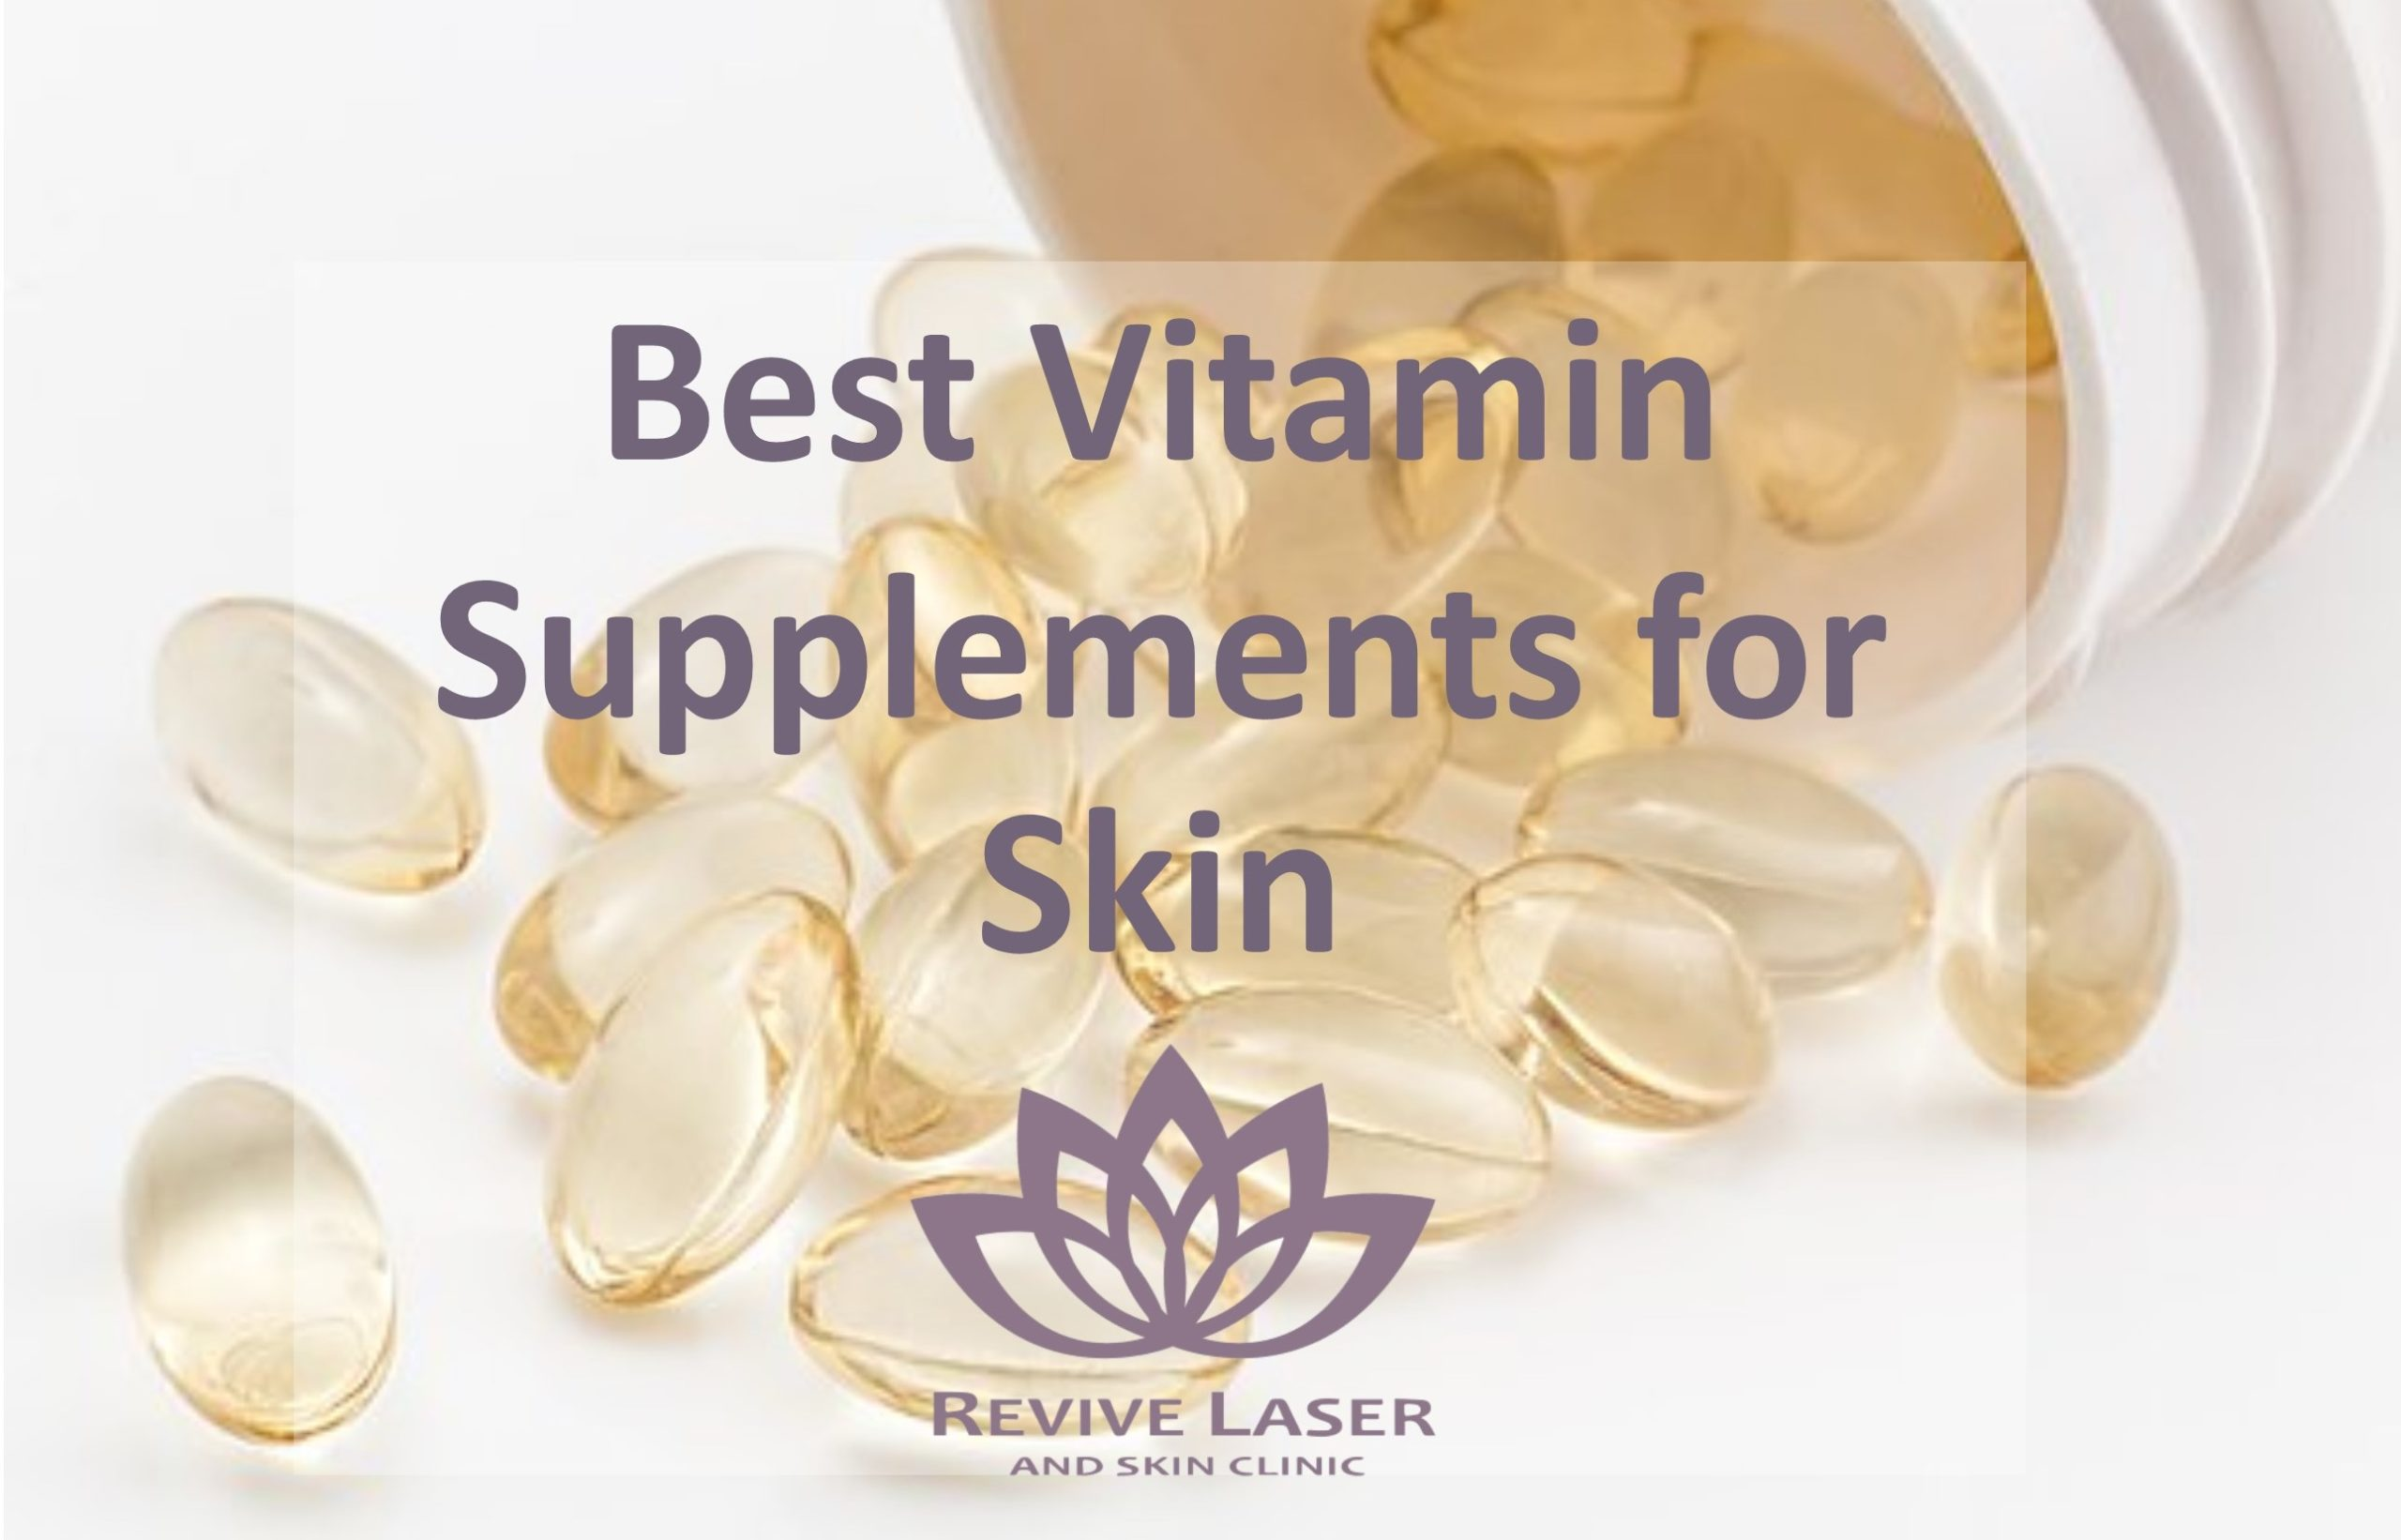 Best Vitamin Supplements for Skin